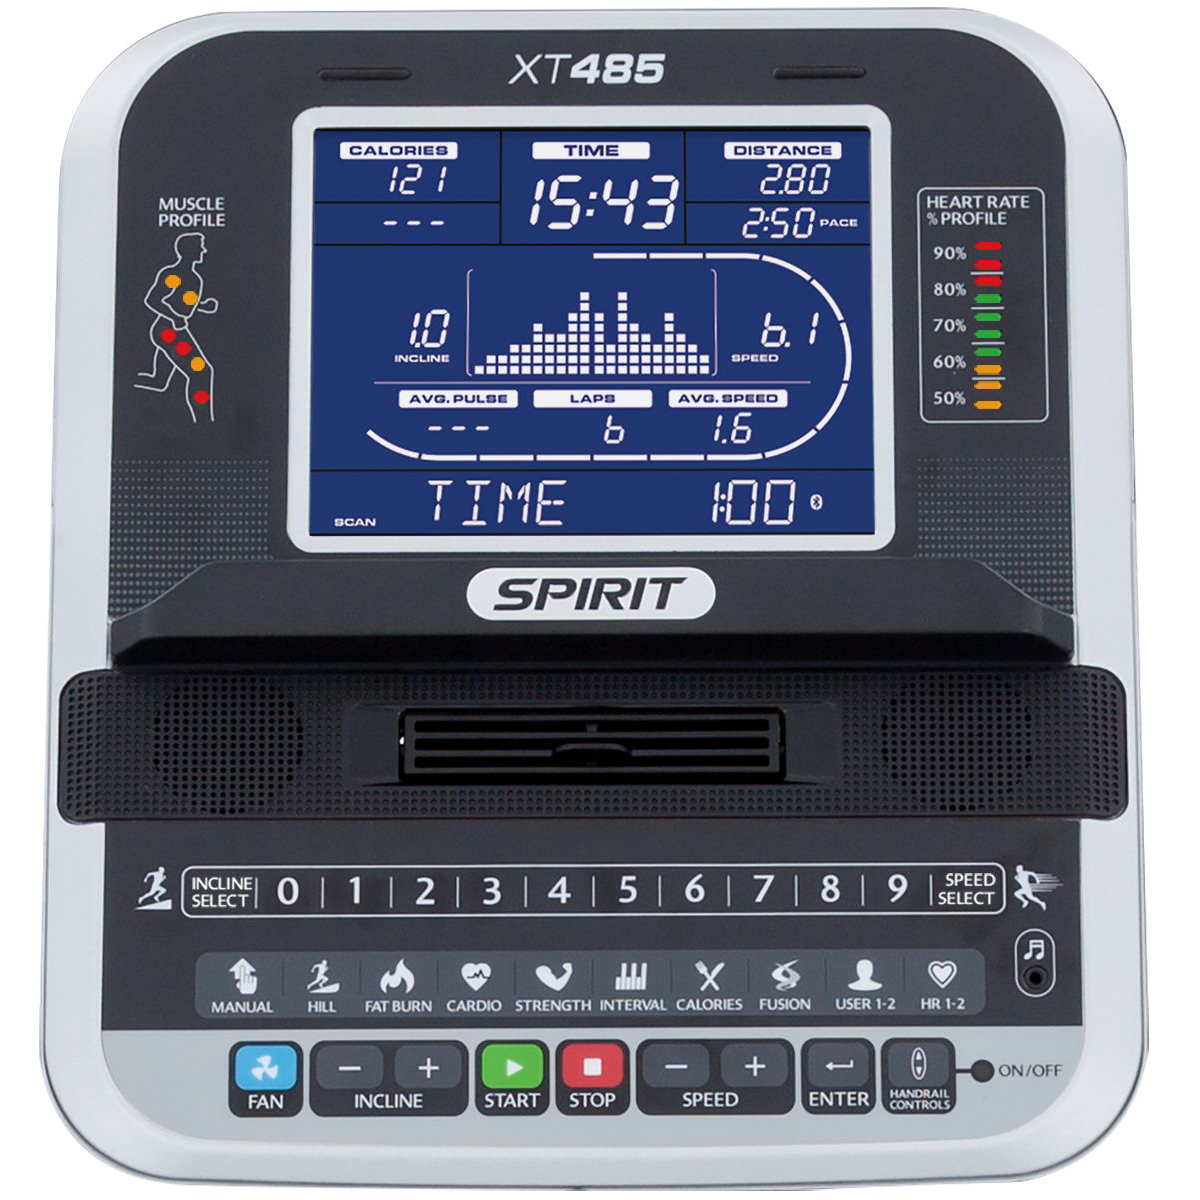 Spirit Fitness XT485 treadmill monitor with blue backlit LCD and multi-coloured indicator lights